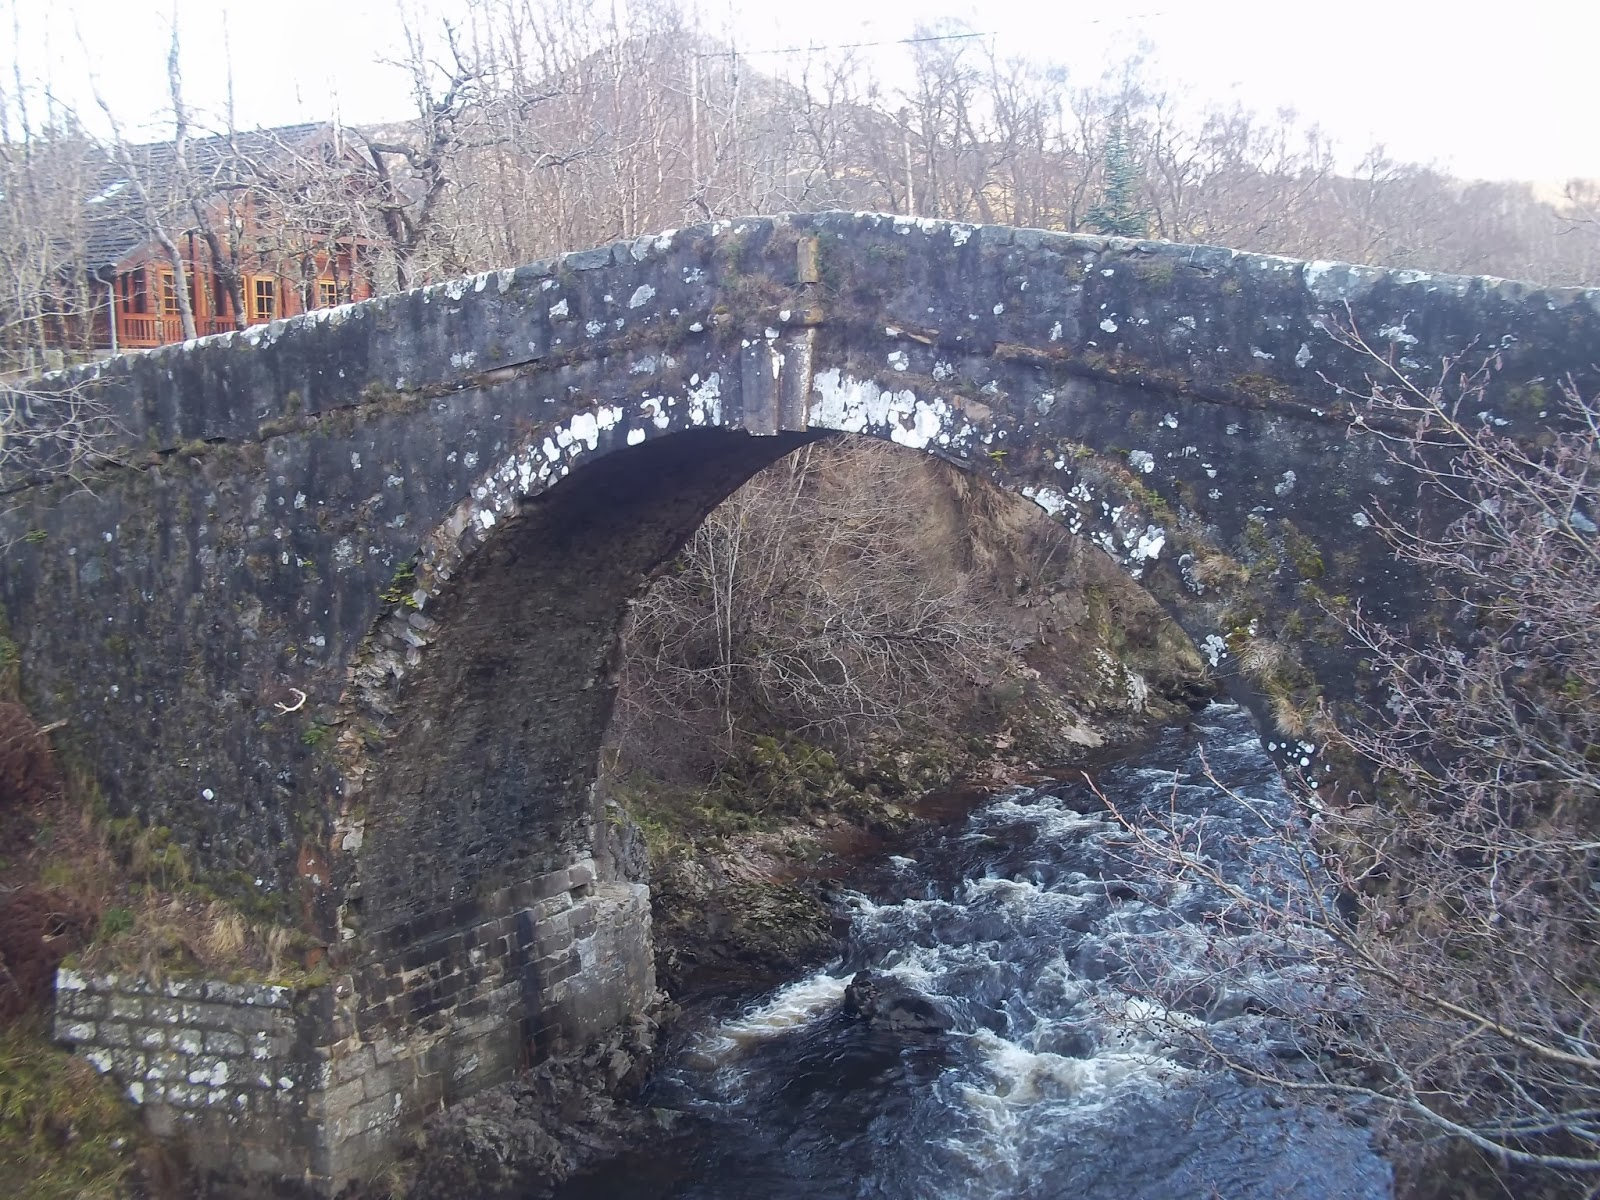 General Wade's bridge Whitebridge Wildside Highland Lodges